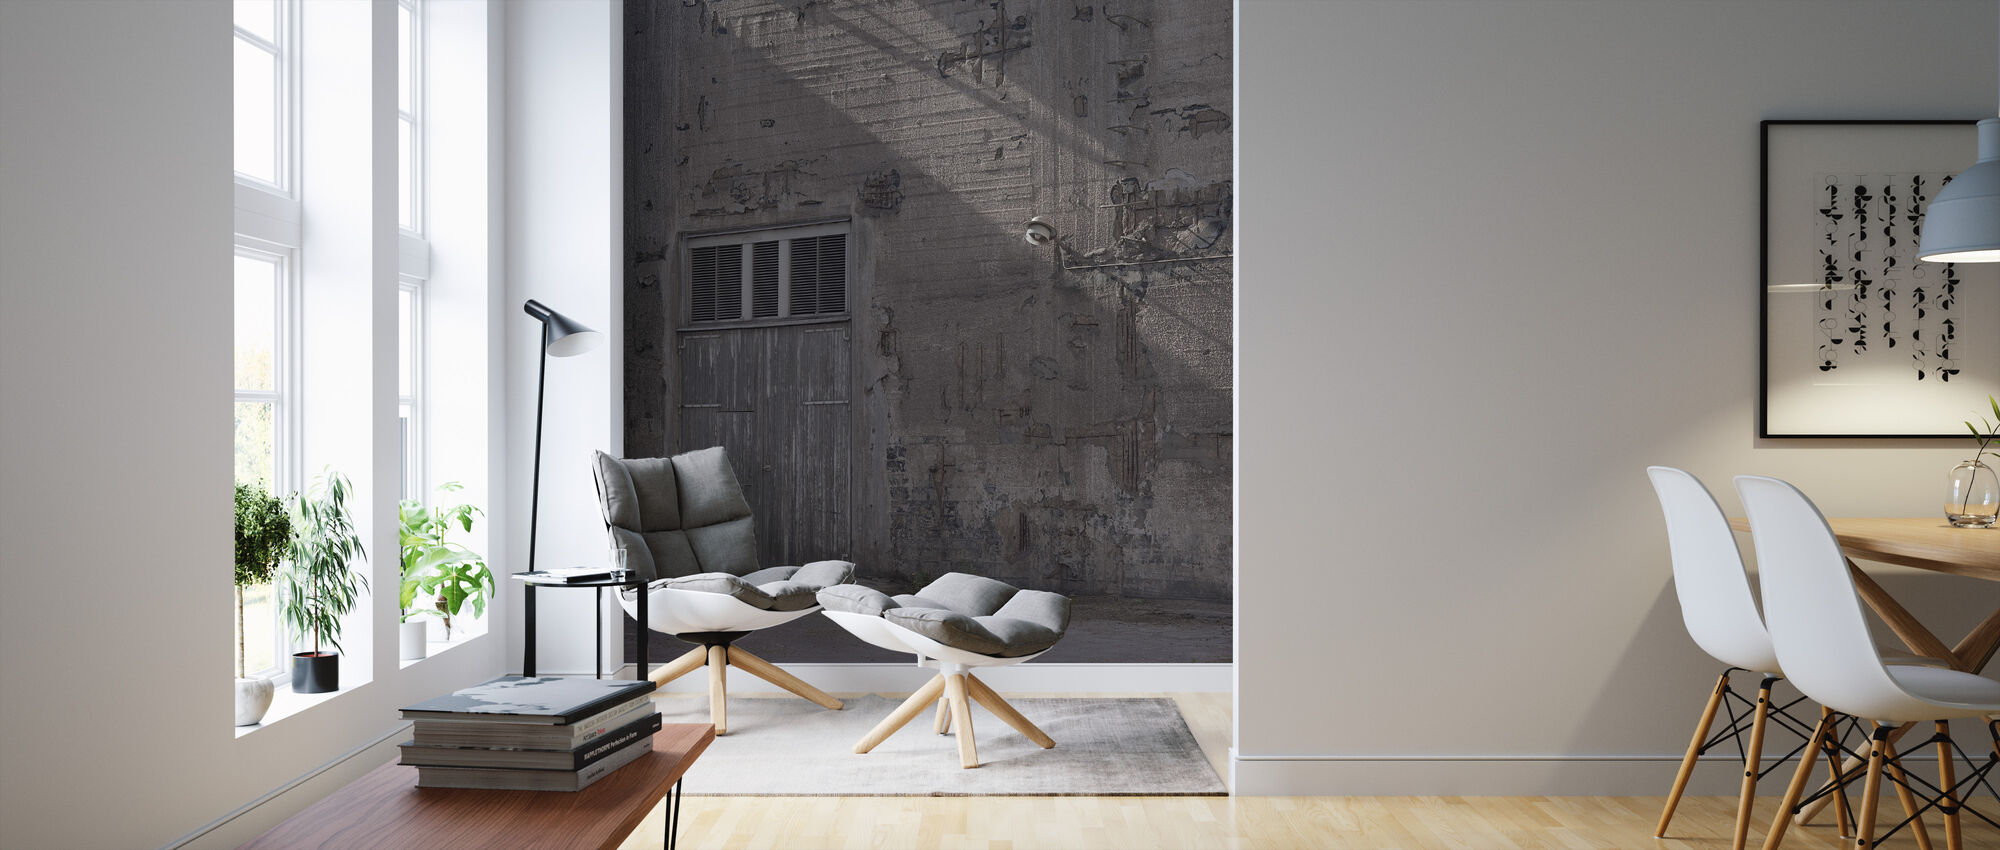 Concrete Facade - Wallpaper - Living Room